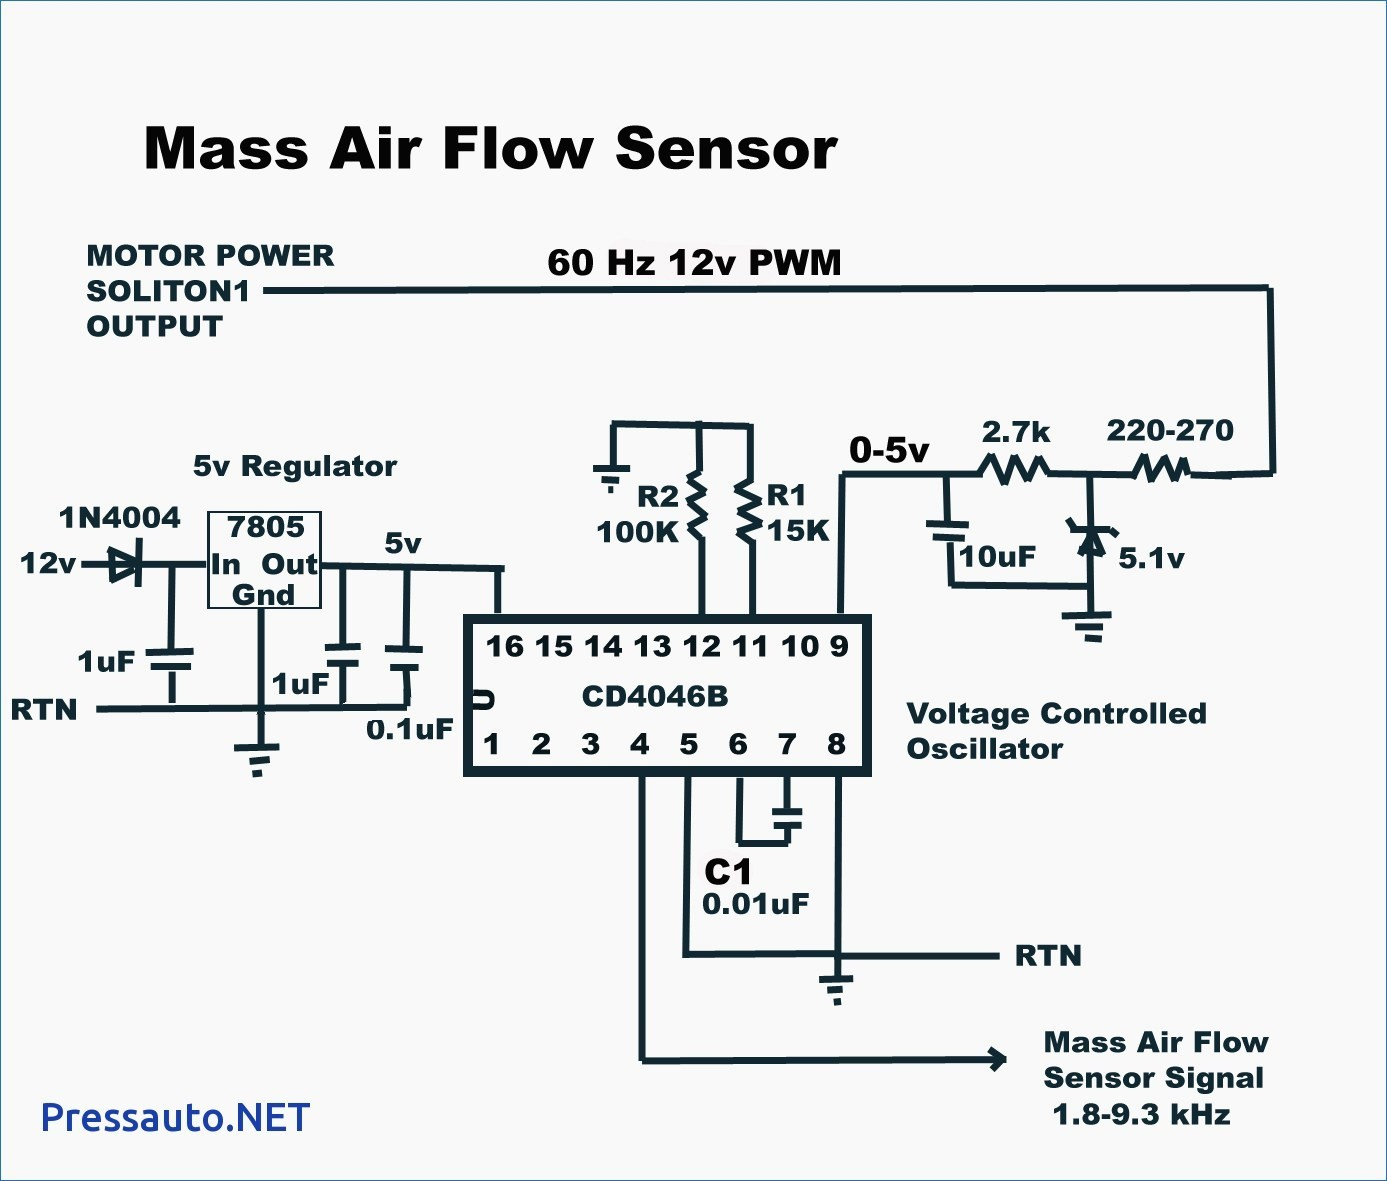 td5 maf sensor wiring diagram mas air flow wire mass airflow sensors rh aspenthemeworks 2003